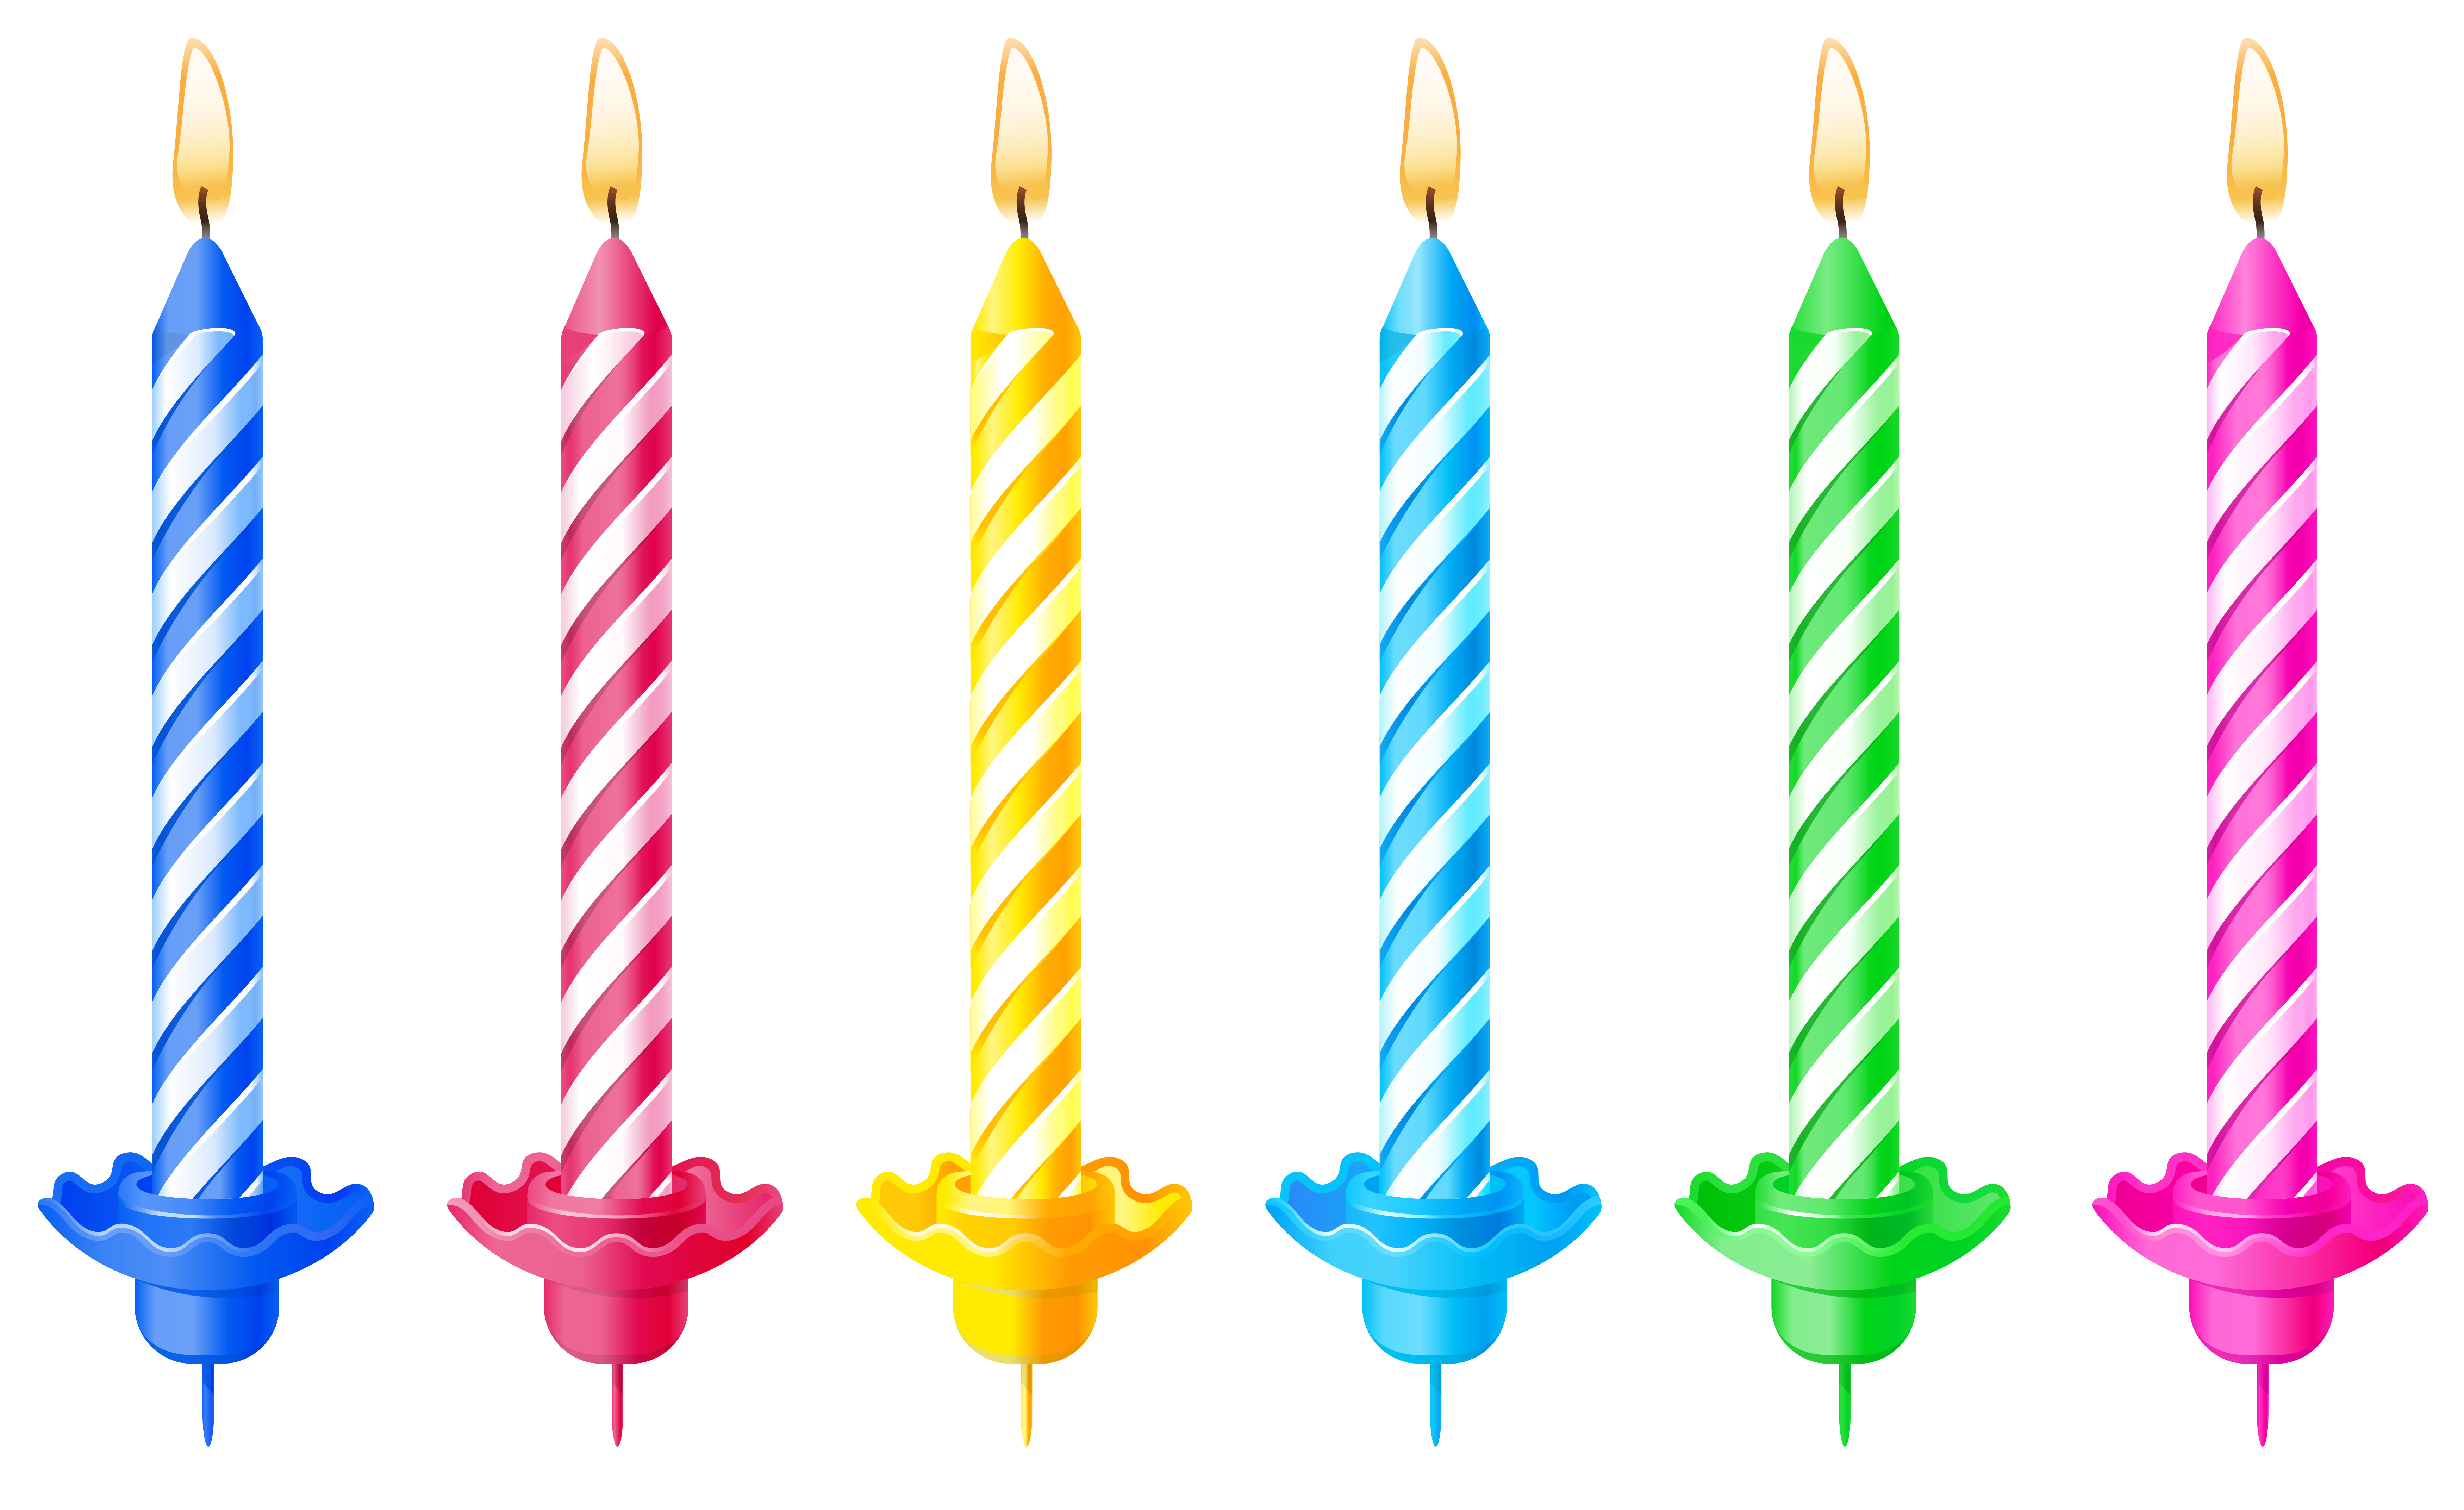 Birthday Candles Png Image #31055 - Birthday Candles, Transparent background PNG HD thumbnail